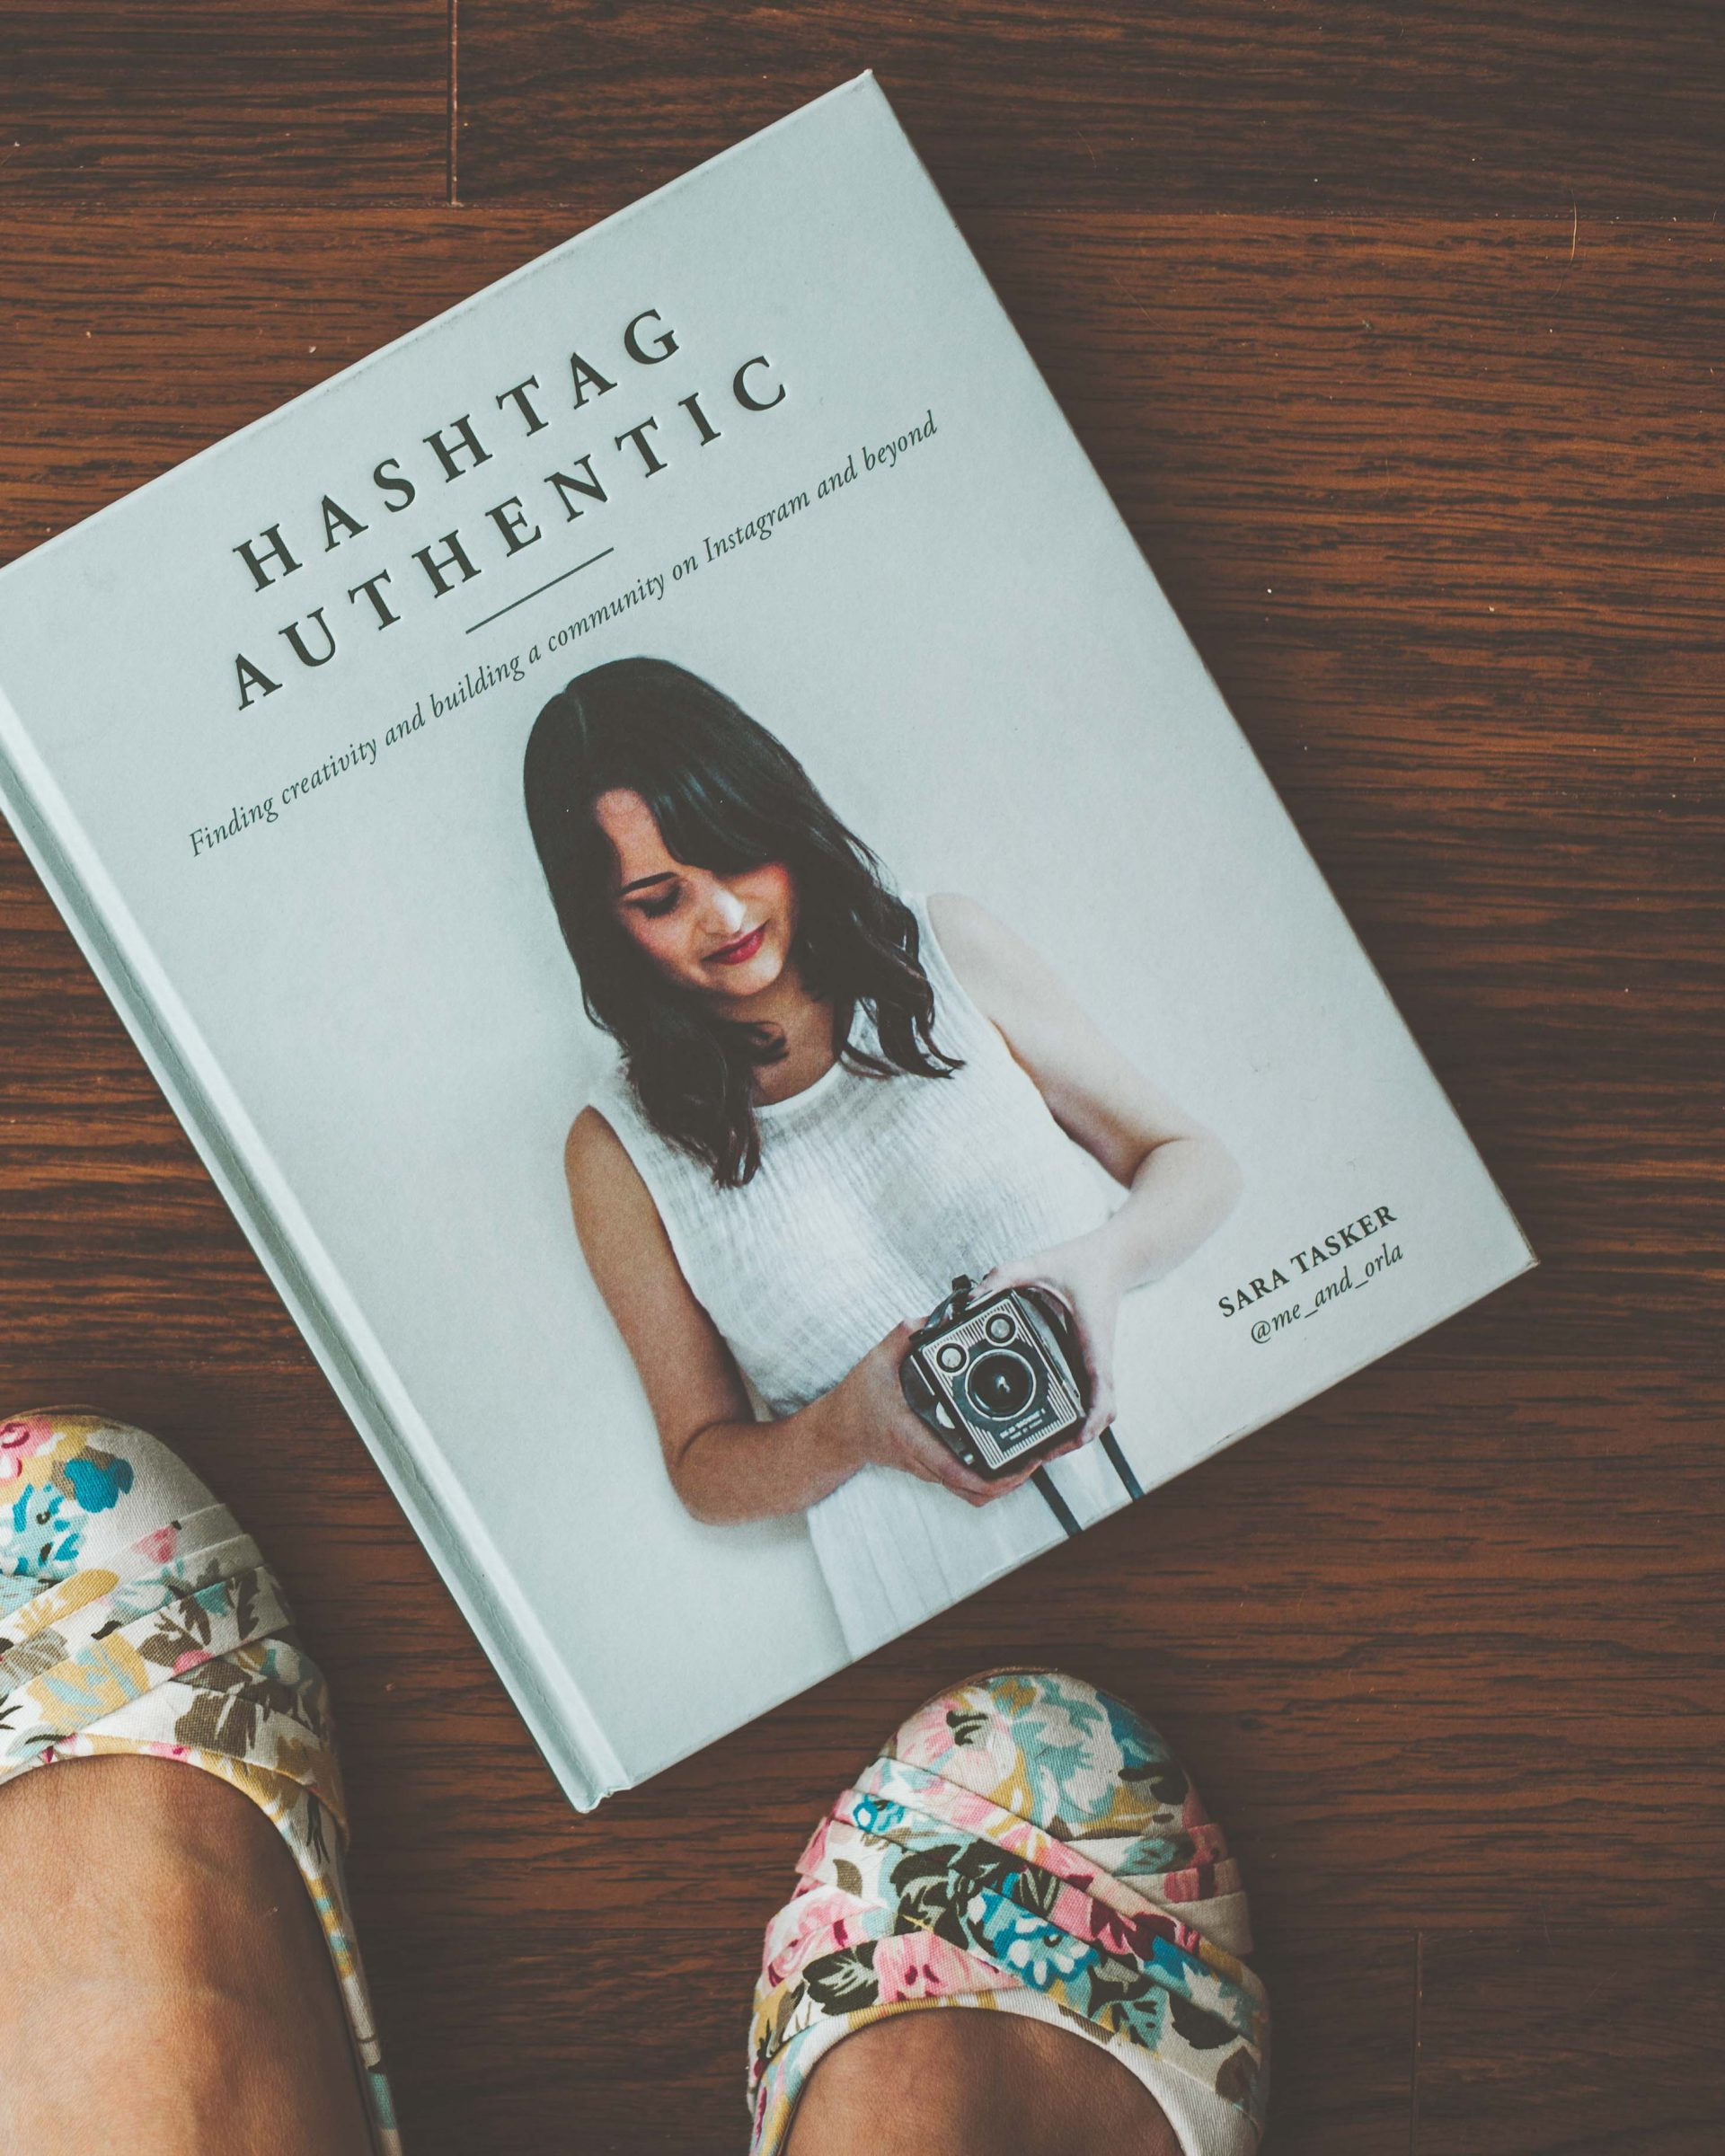 Read this book if you want to impress on Instagram. Really.